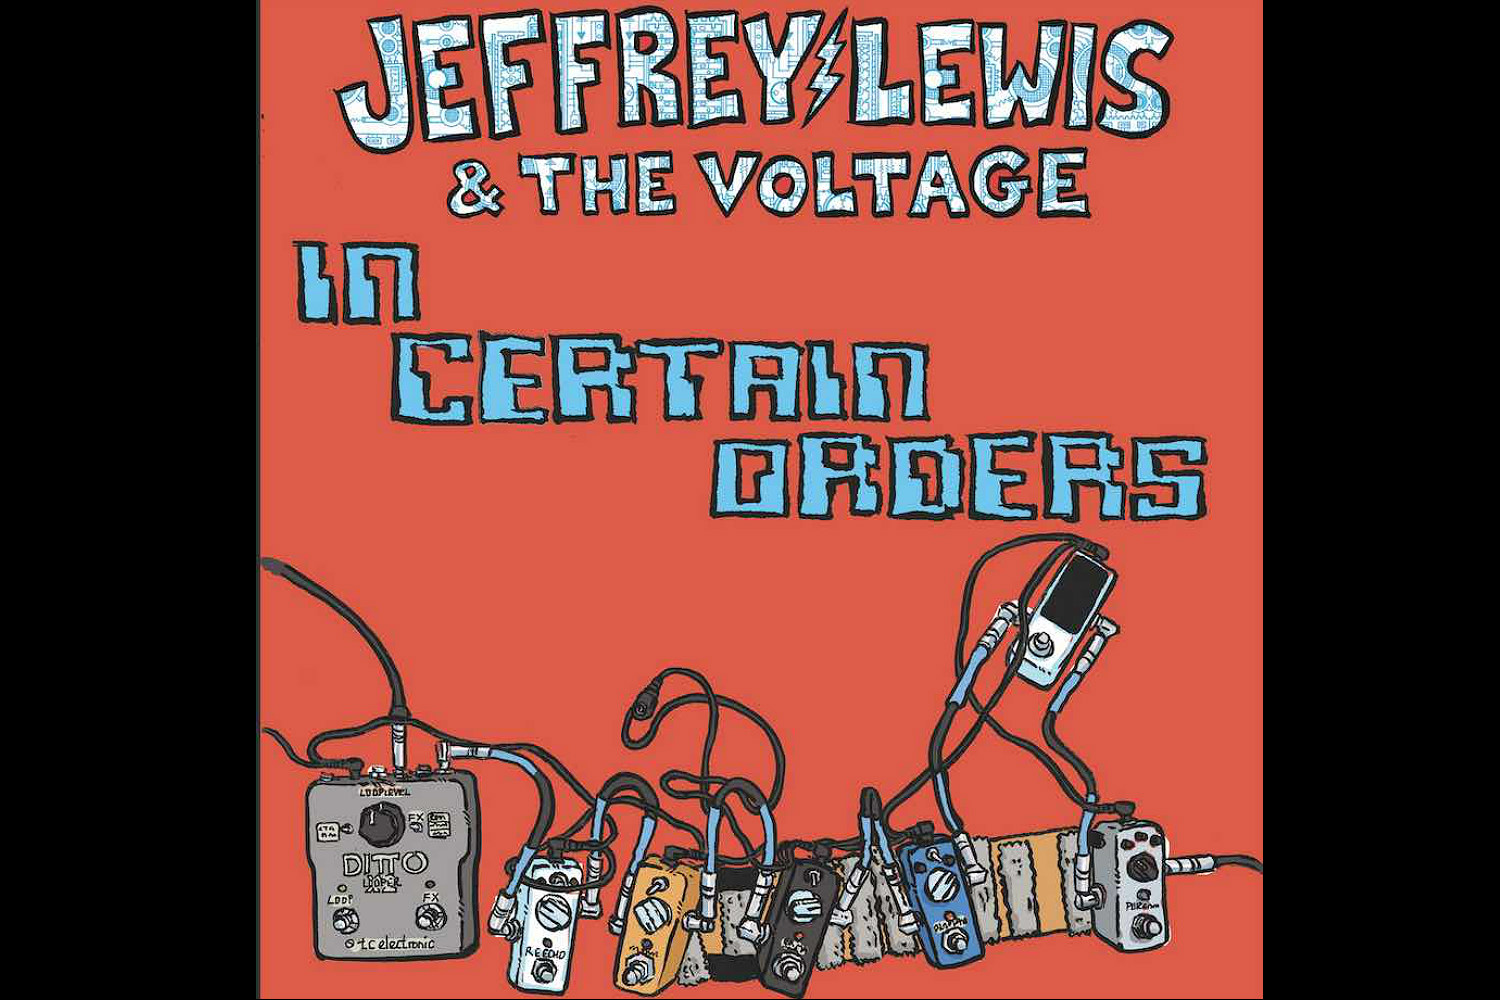 Watch: Jeffrey Lewis & The Voltage share video for new track 'In Certain Orders'